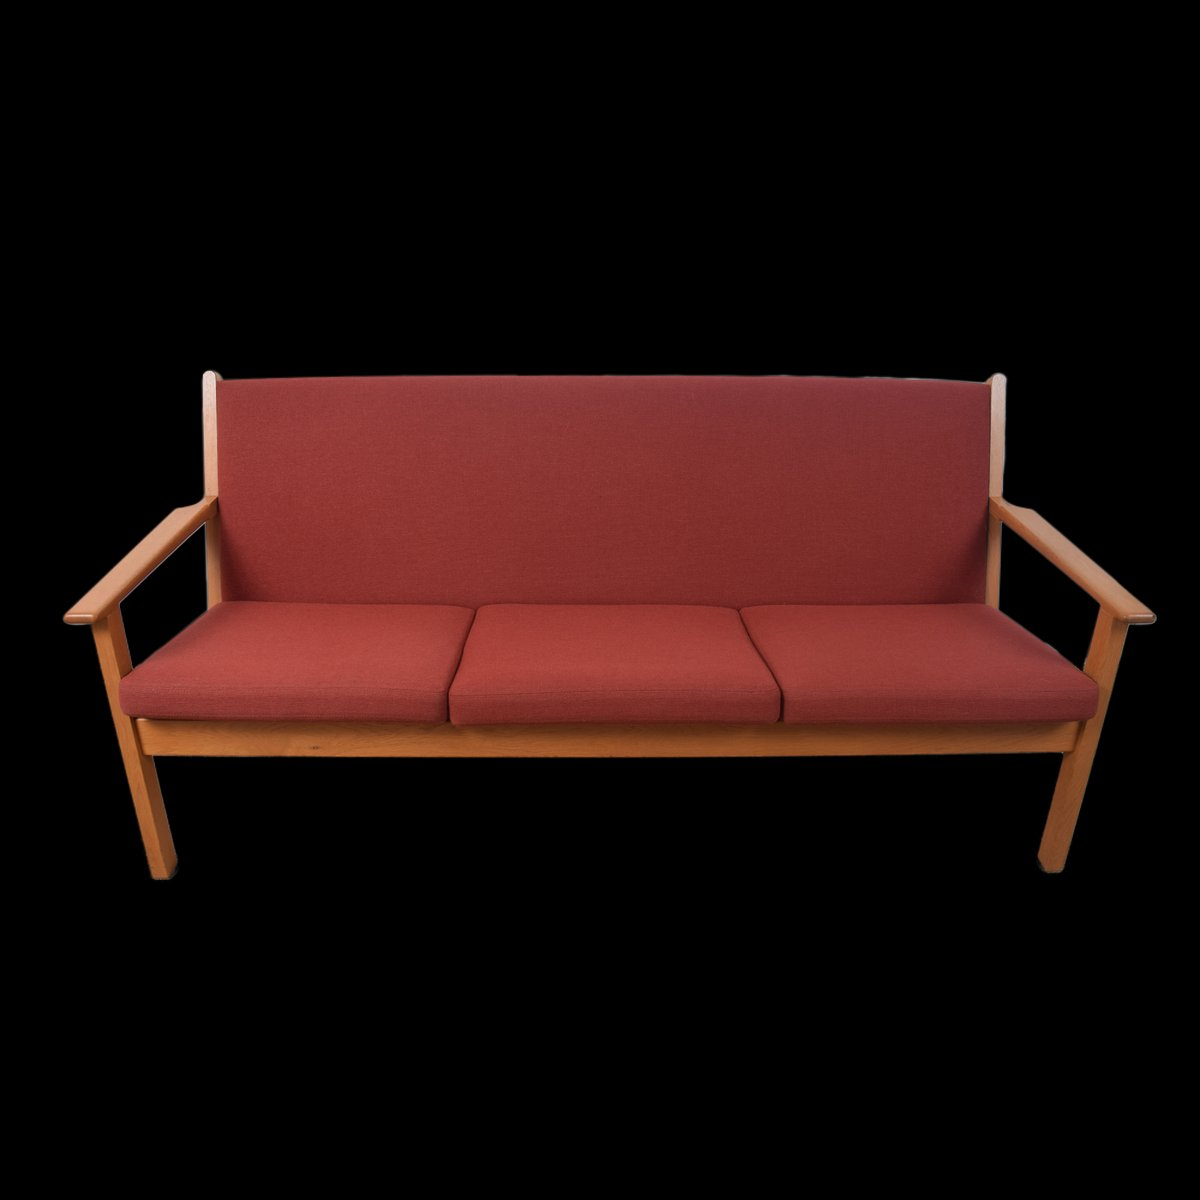 Danish Model Ge 265 3 Seater Sofa By Hans J Wegner For Getama 1960s For Sale At Pamono